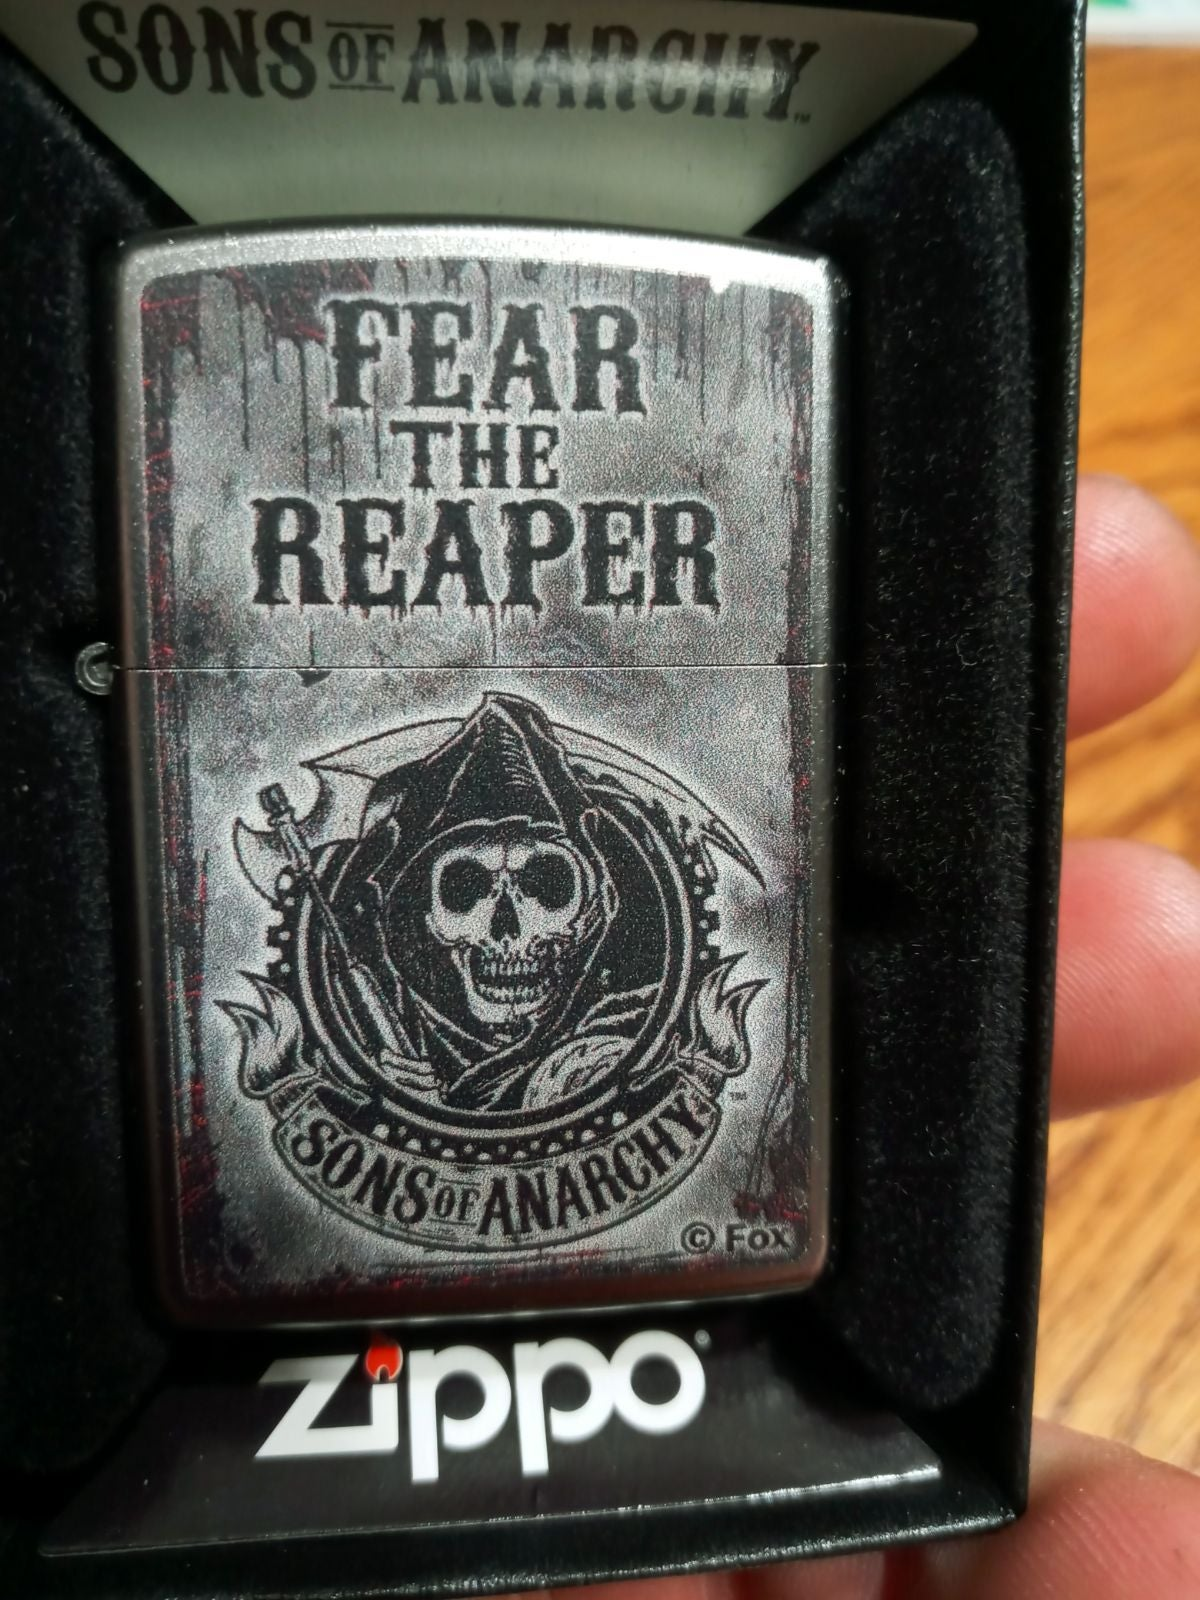 Zippo Lighter sons of anarchy